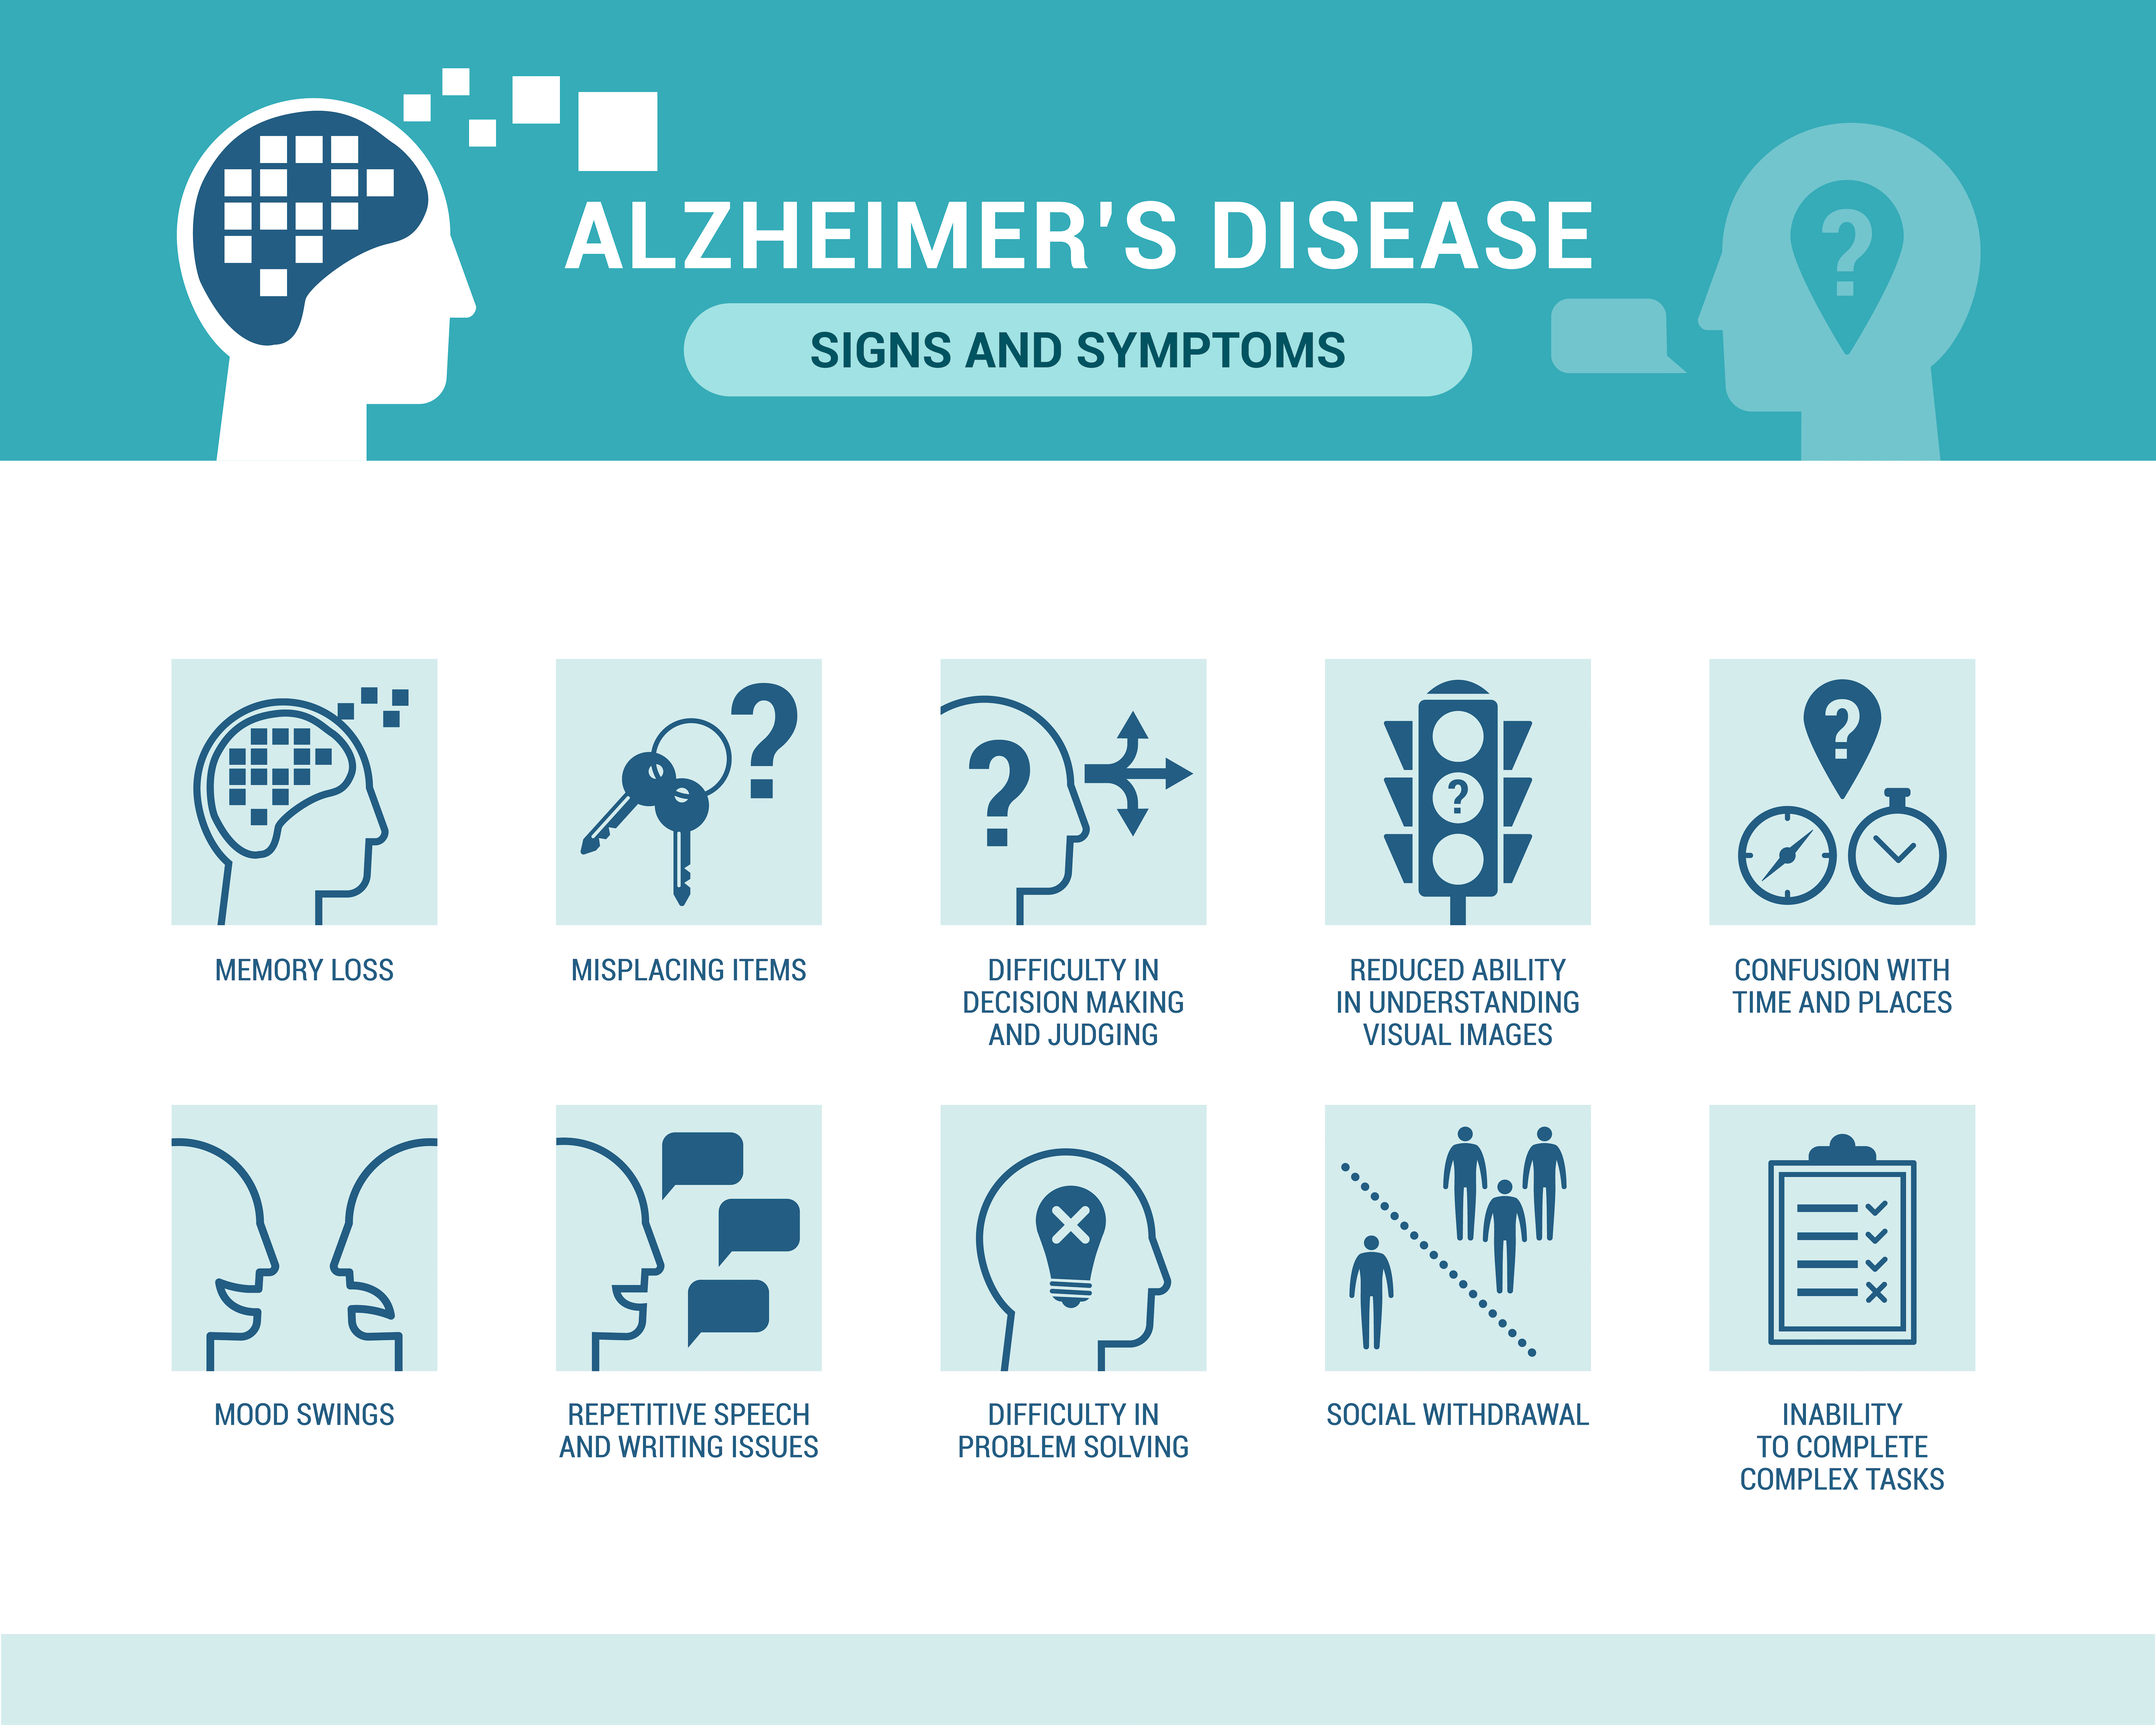 Graphic of Alzheimer's Disease Signs and Symptoms, including memory loss, difficulty in problem solving, and more